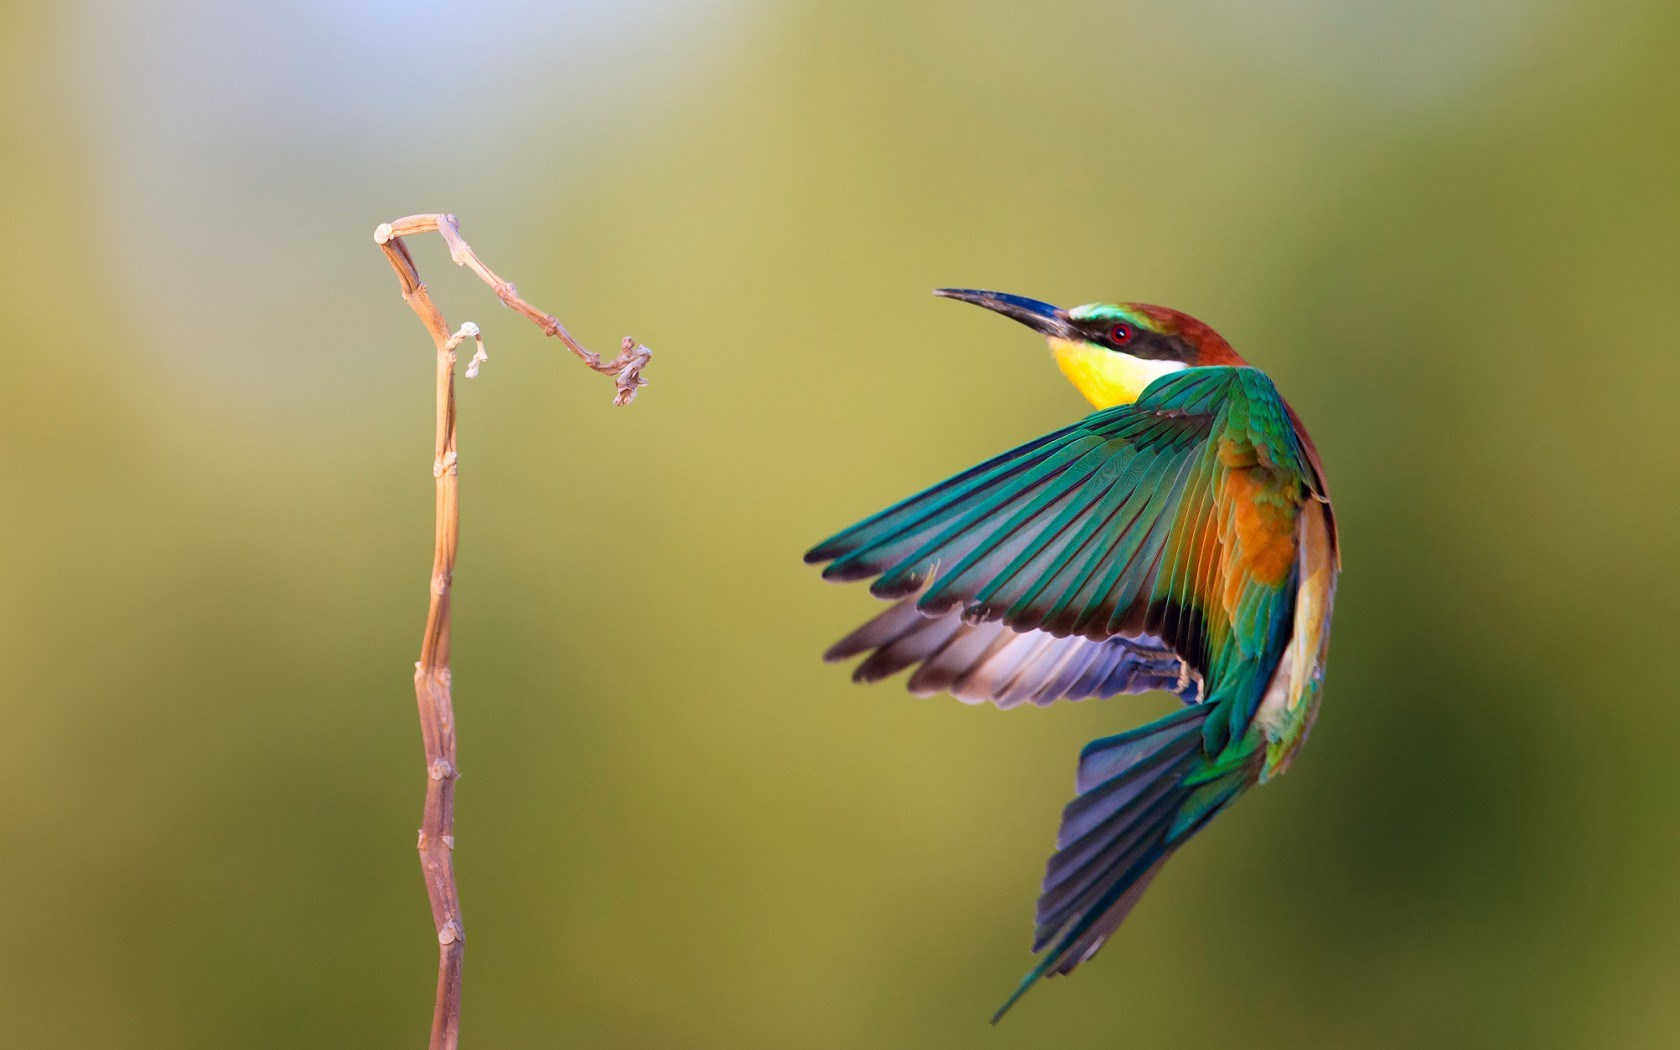 Gallery For gt Birds Wallpapers Hd 1680x1050